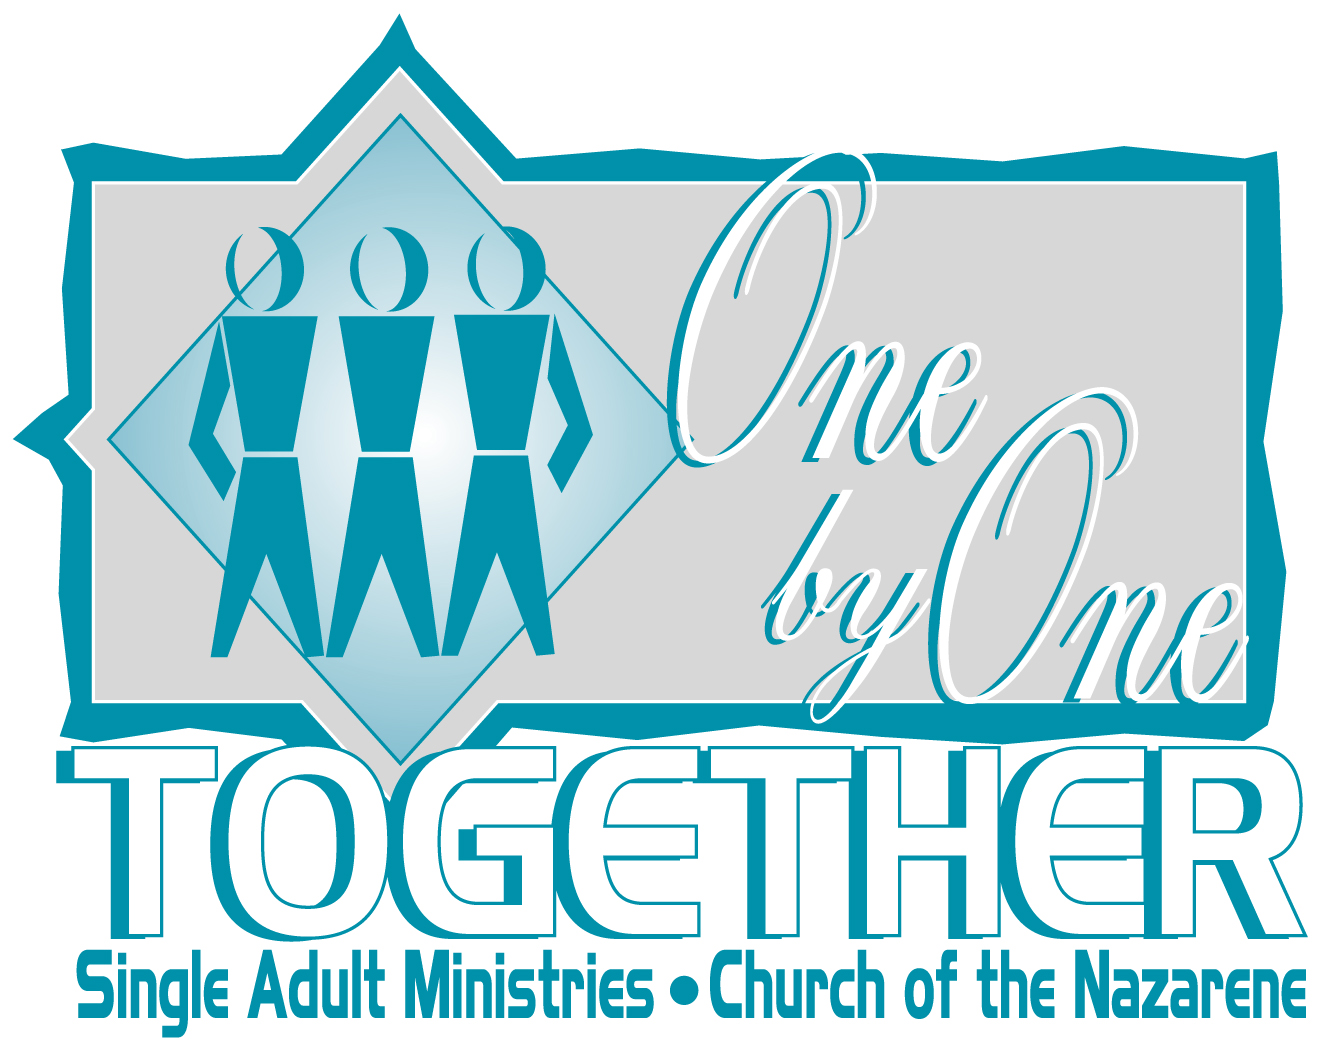 mission for single adult ministry